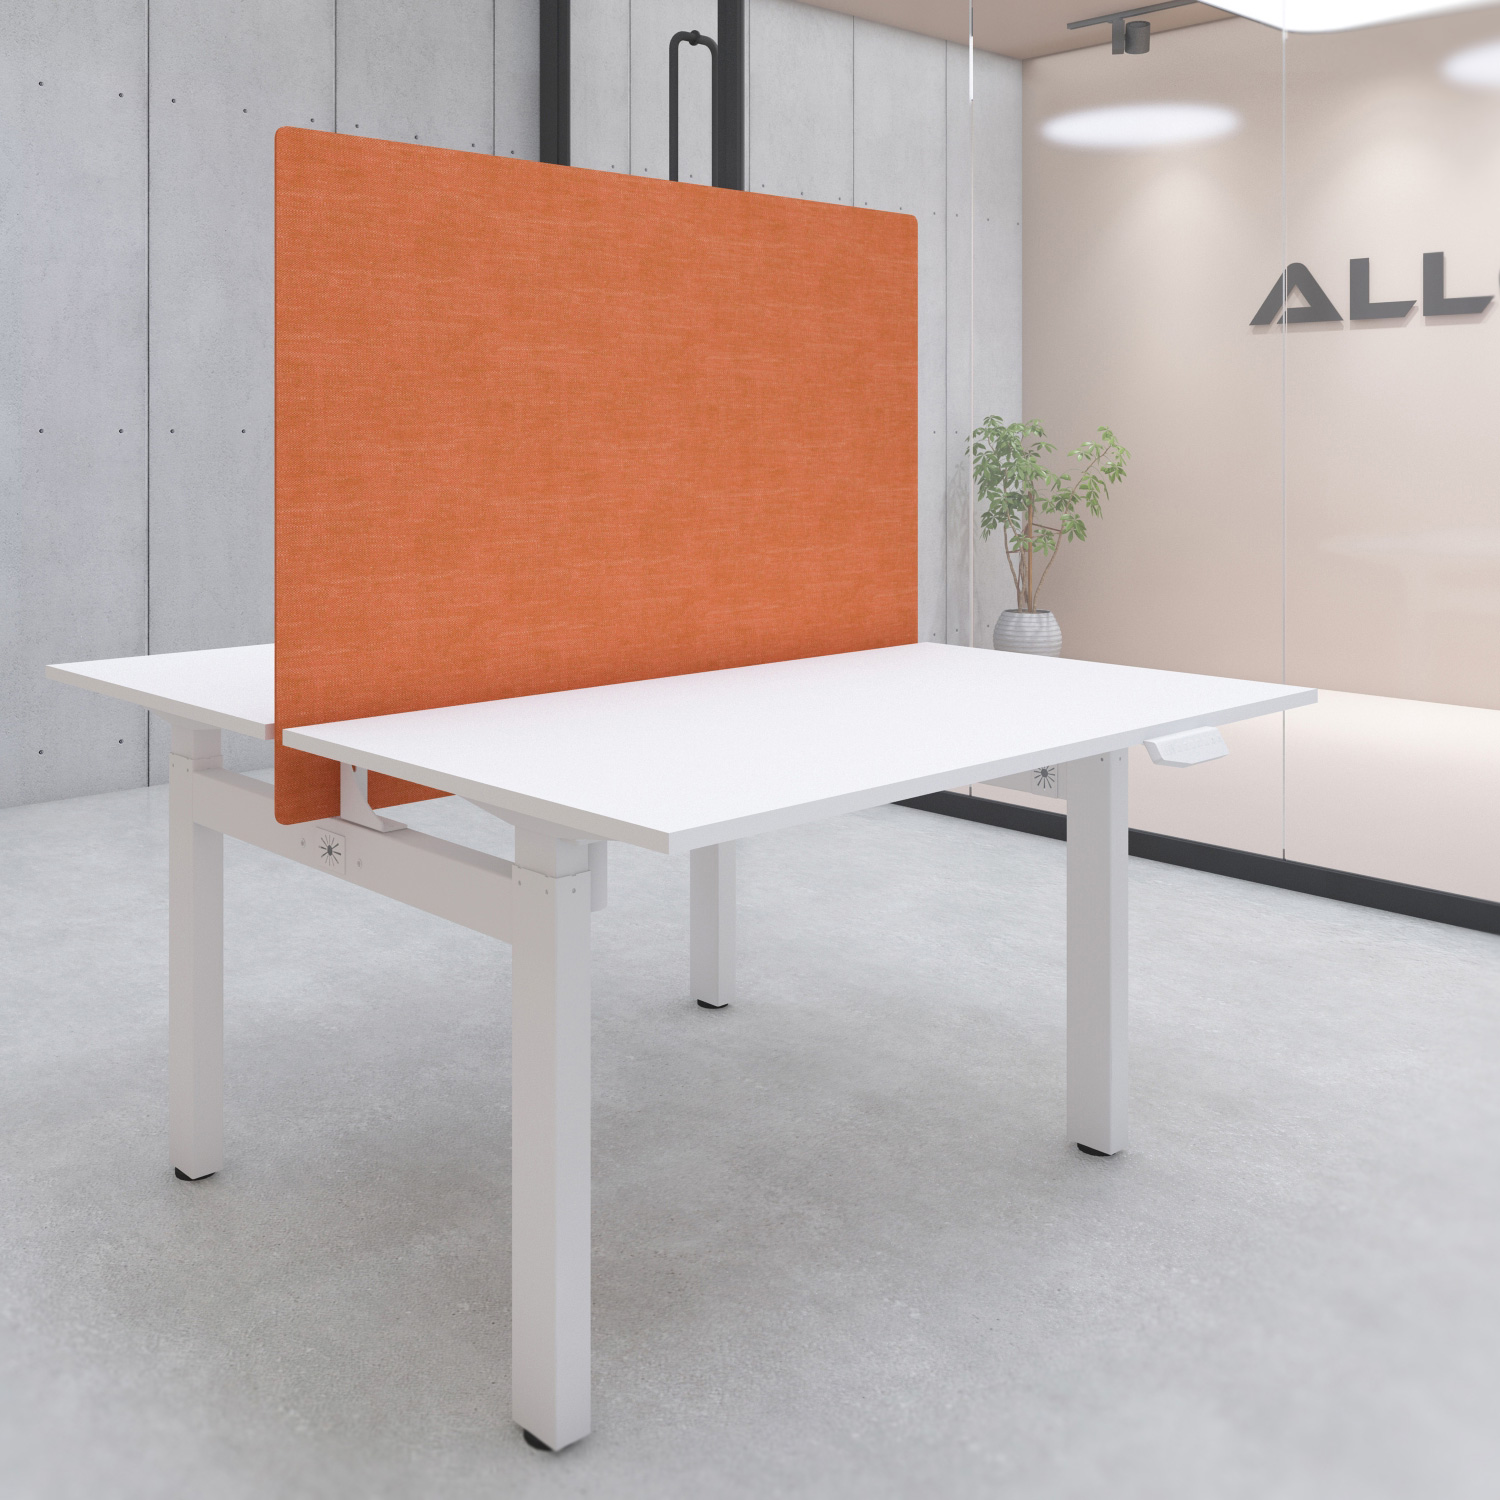 s149ordesk privacy screen with mounting kit 1400x900 orange